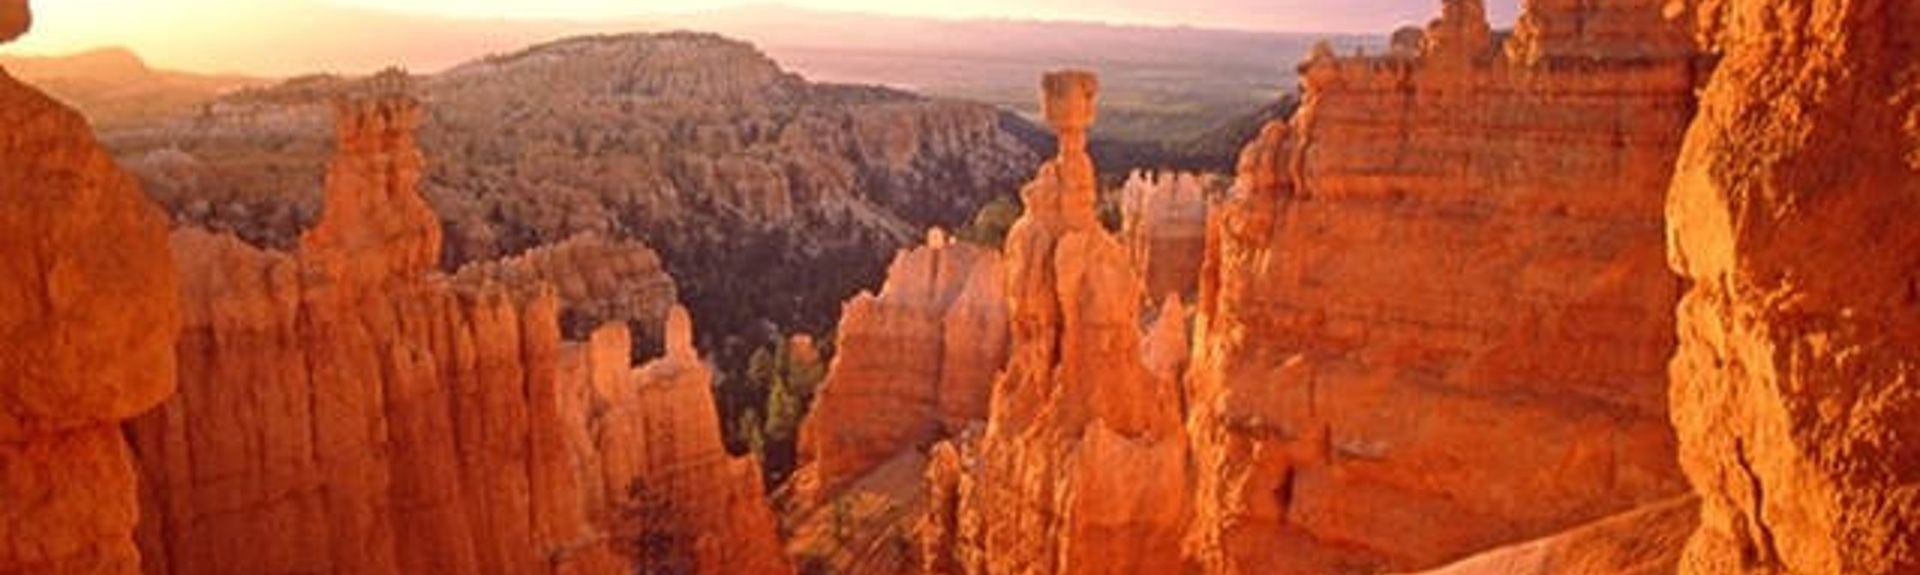 Bryce Canyon, UT, USA